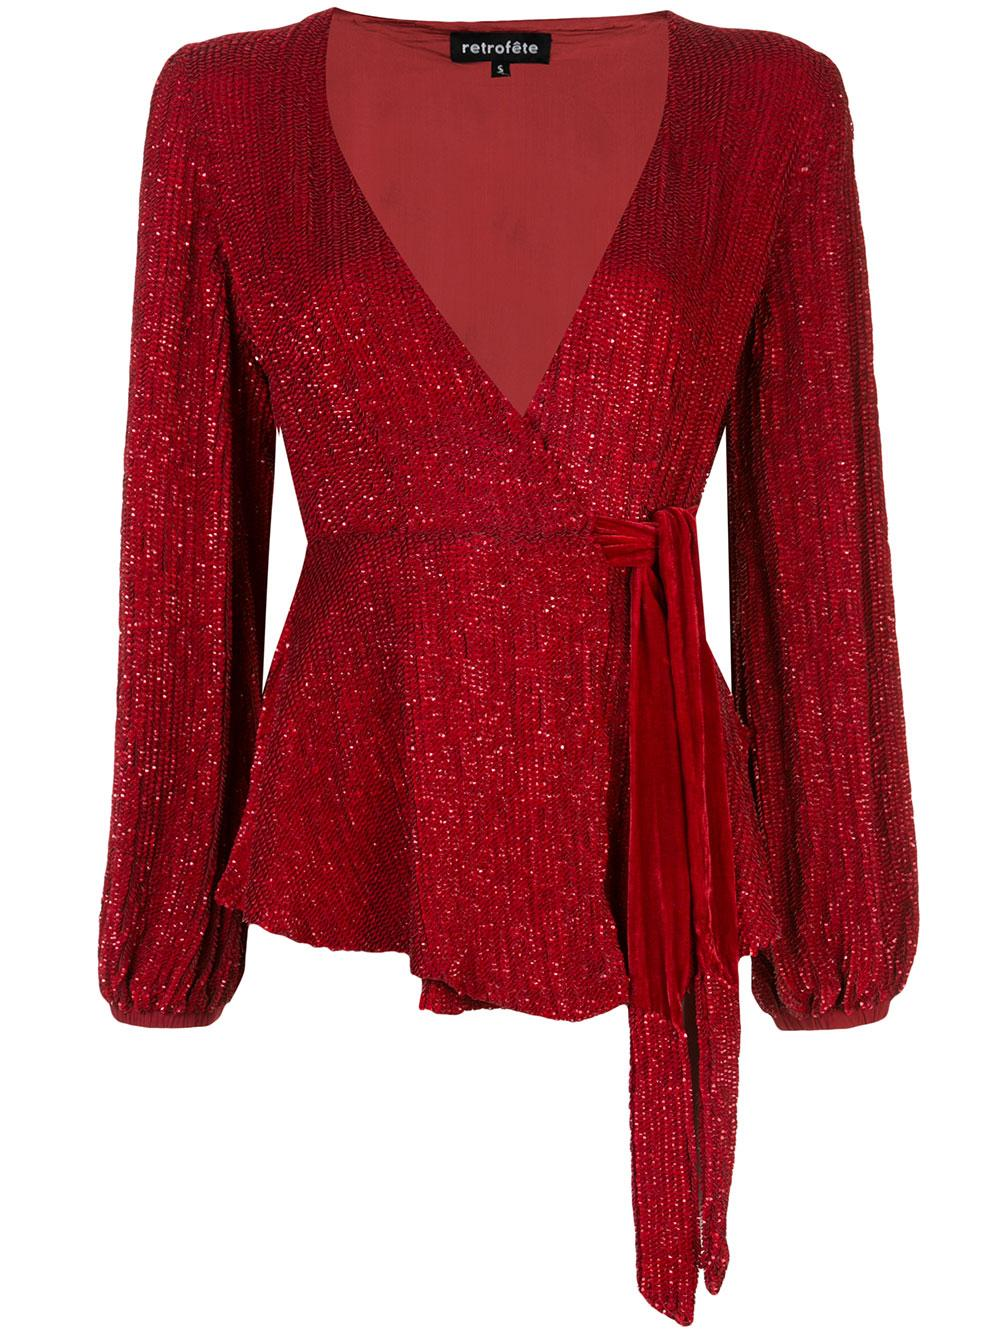 Bette Long Sleeve Sequin Top